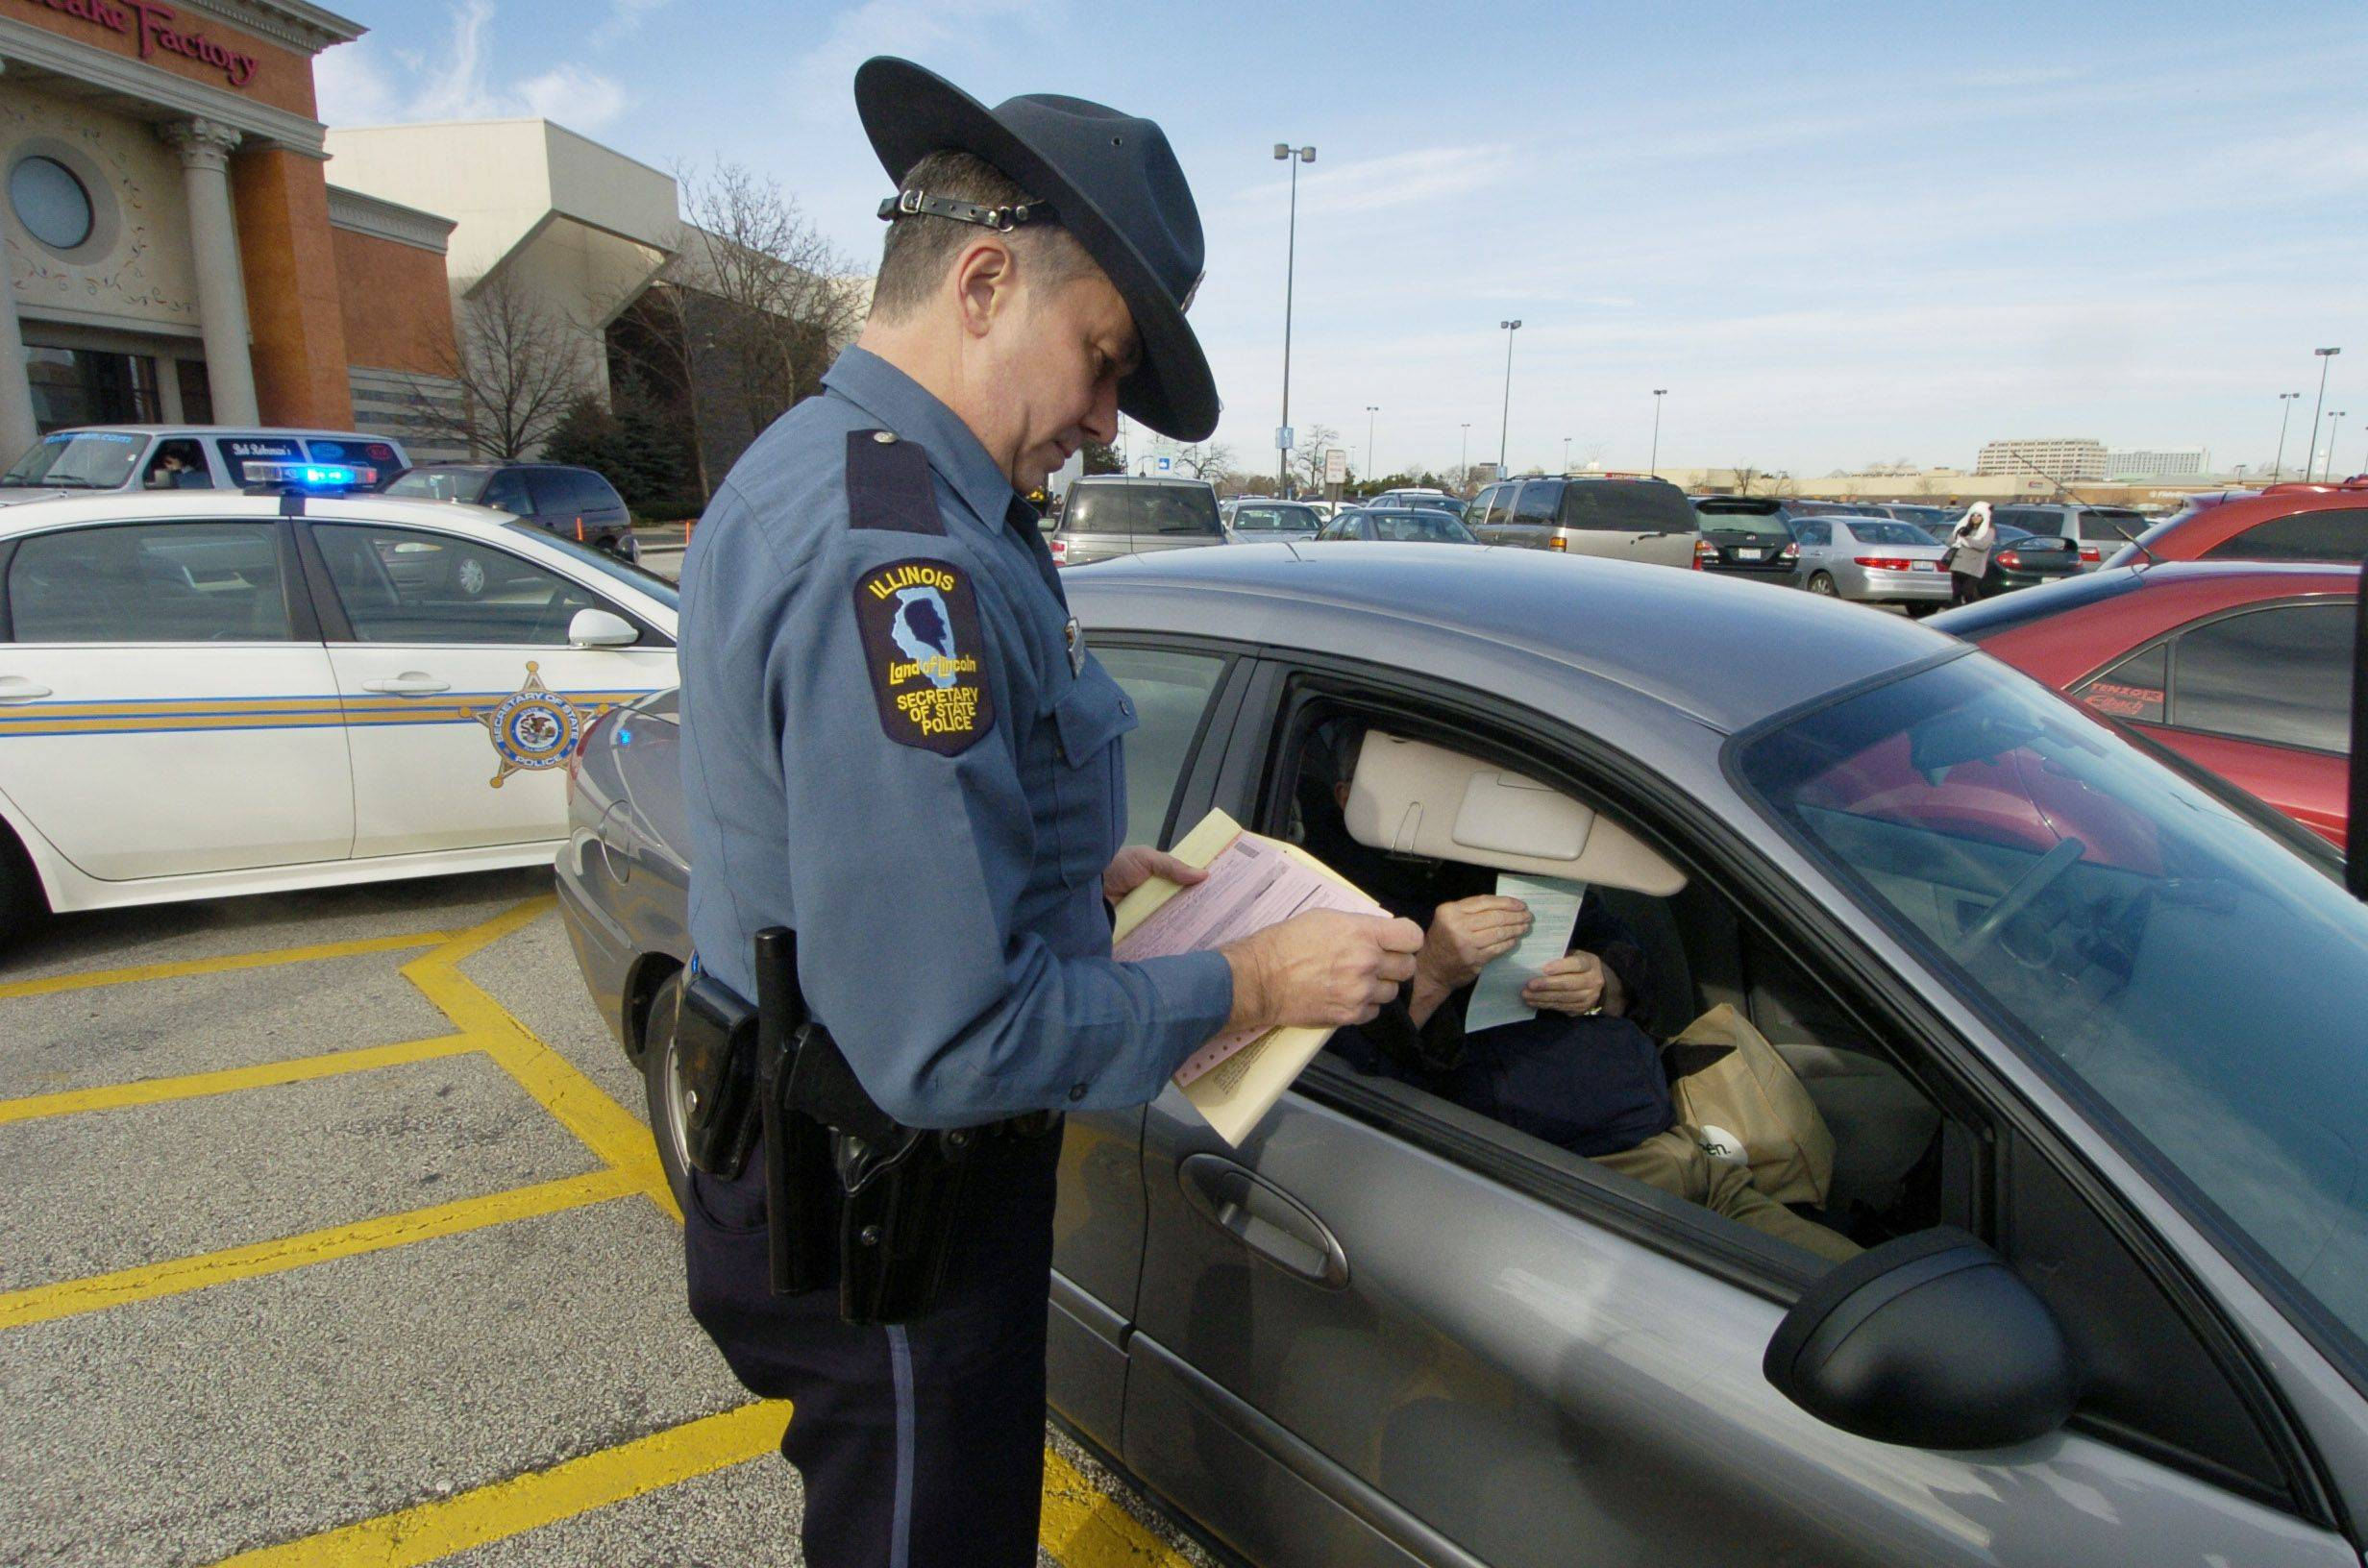 Investigator Glenn Florkow of the Illinois Secretary of State Police issues a citation to a motorist who is improperly parked in a handicapped space at Woodfield mall in Schaumburg Friday.